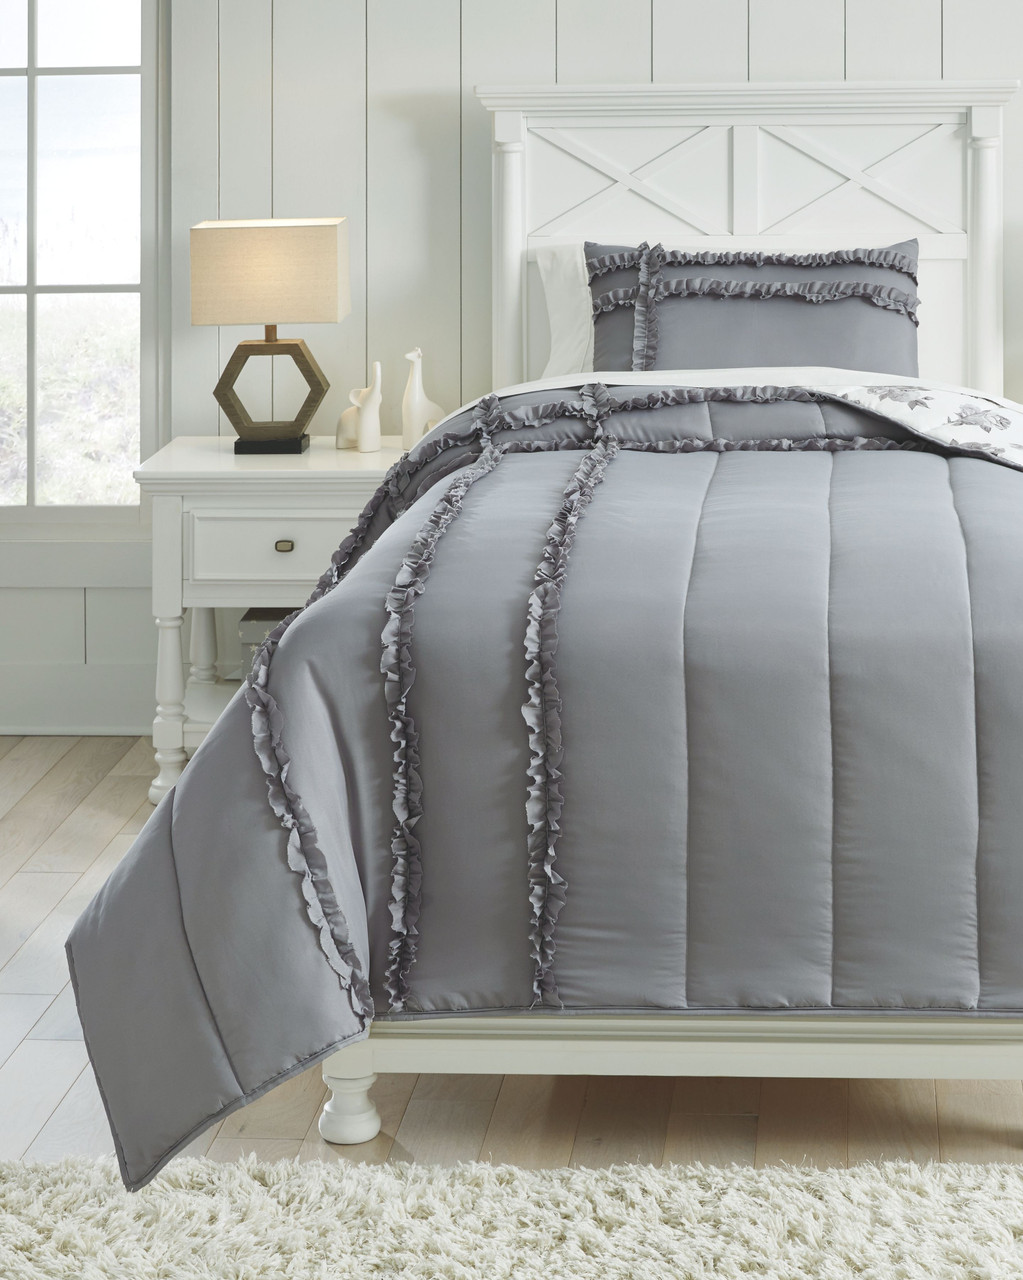 The Meghdad Gray White Twin Comforter Set Available At Bitney S Furniture And Mattress Company Serving Kalispell Mt